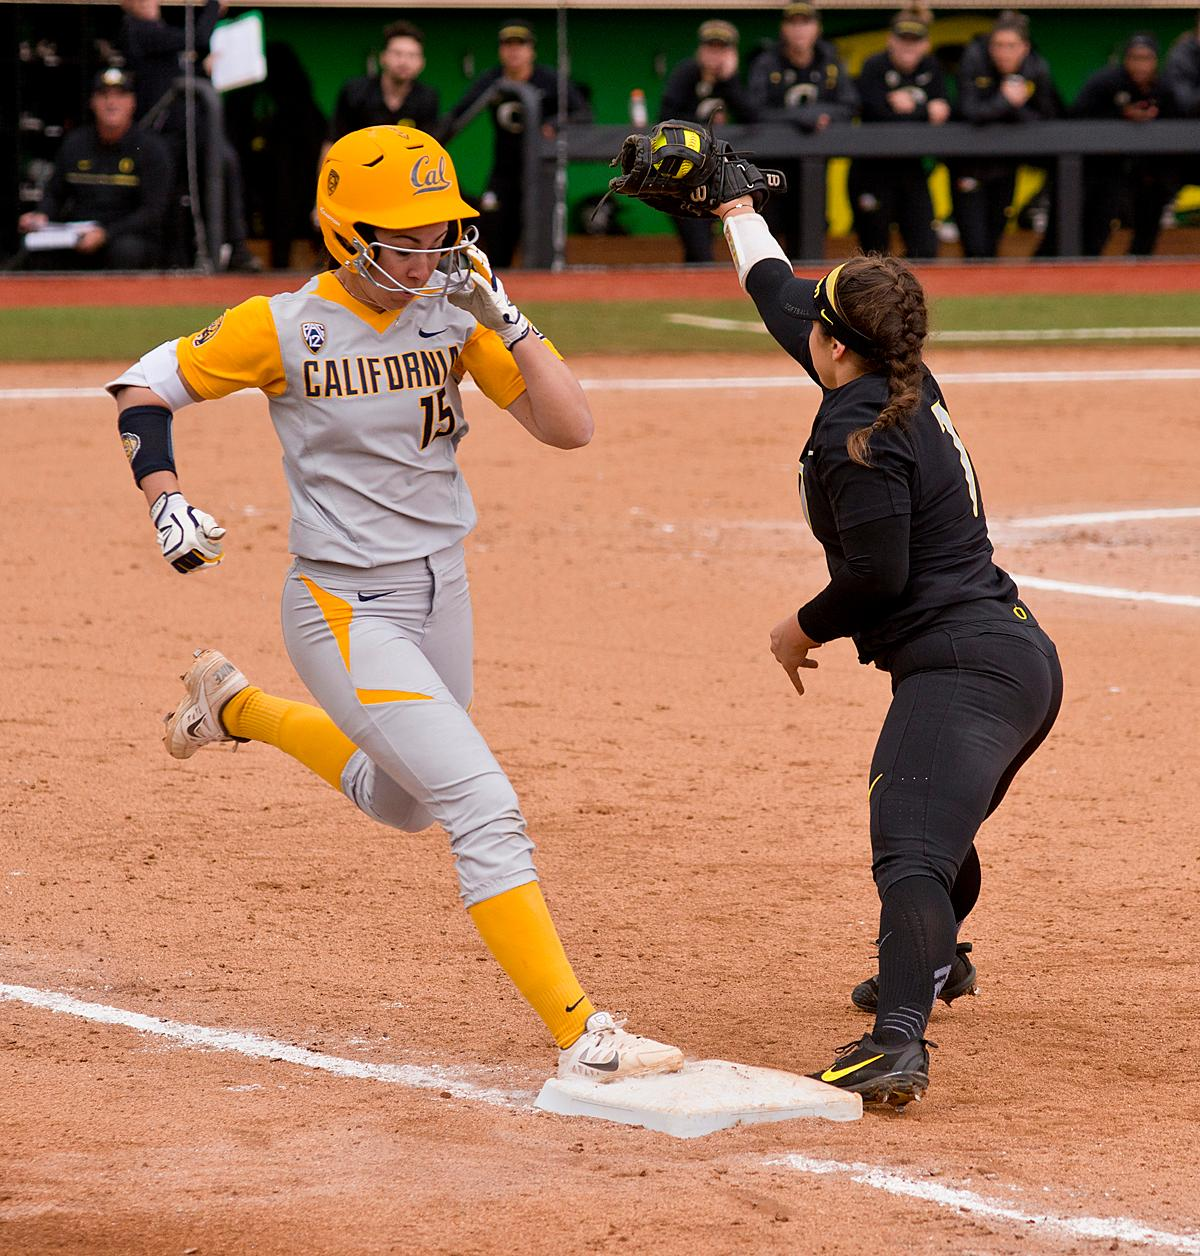 California Golden Bears Lindsay Rood (#15) is put out at first by Oregon Ducks first base player Mia Camuso (#7). The Ducks defeated the Golden Bears 2-1 in the second game of a three-game series Saturday. Photo by Dan Morrison, Oregon News Lab